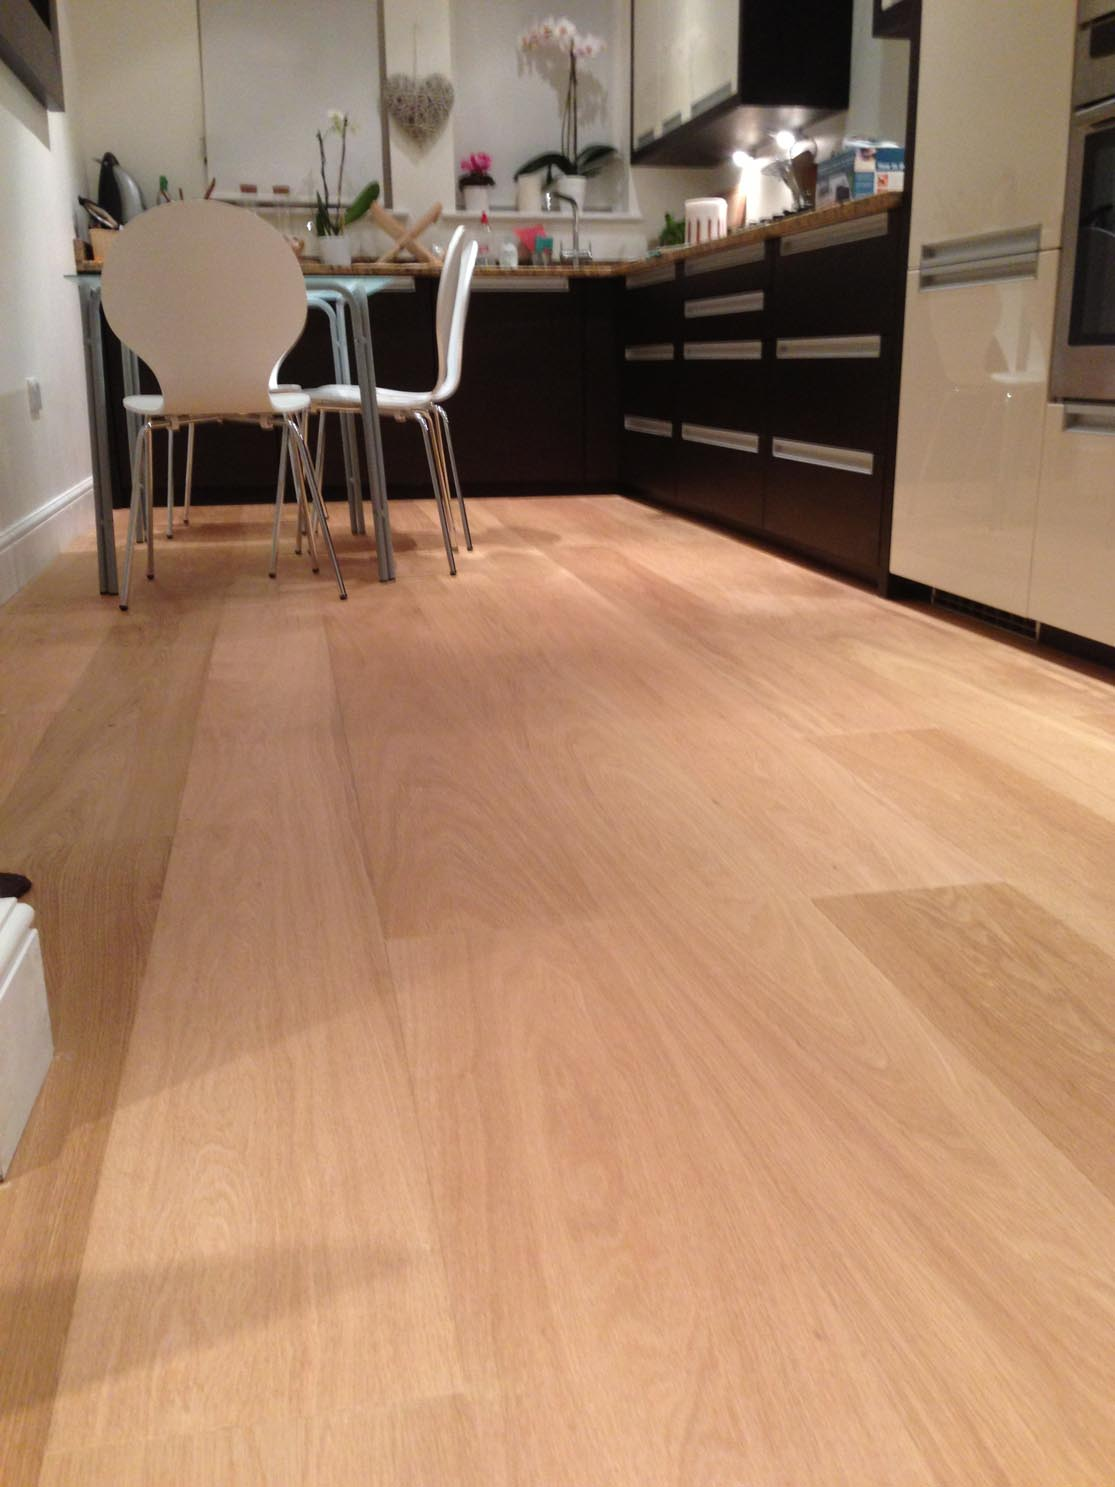 E352LN Oiled Oak flooring in a Kitchen